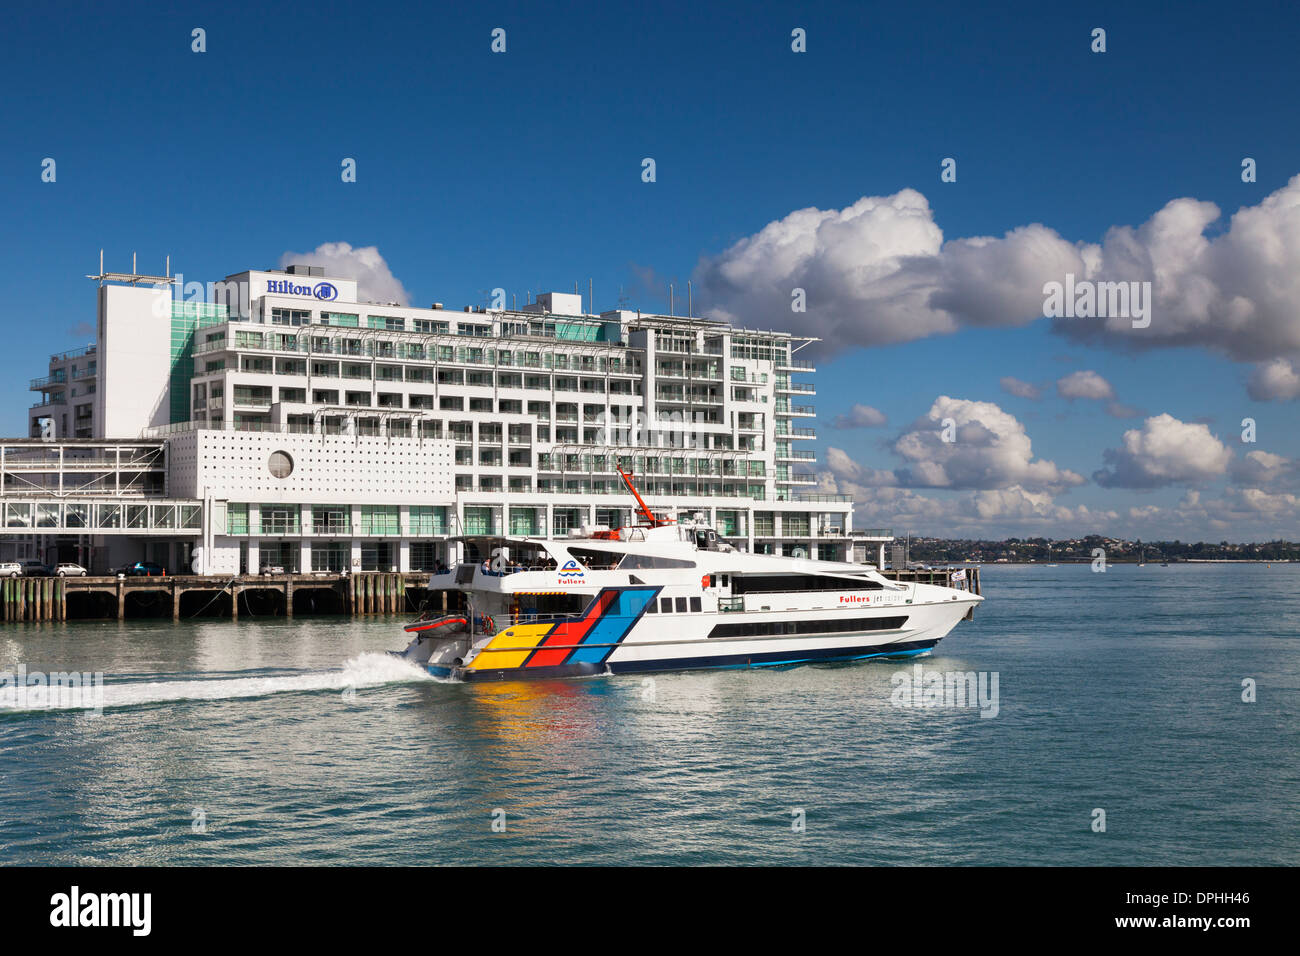 Fullers Ferry Passing Hilton Hotel, Auckland, New Zealand - Stock Image